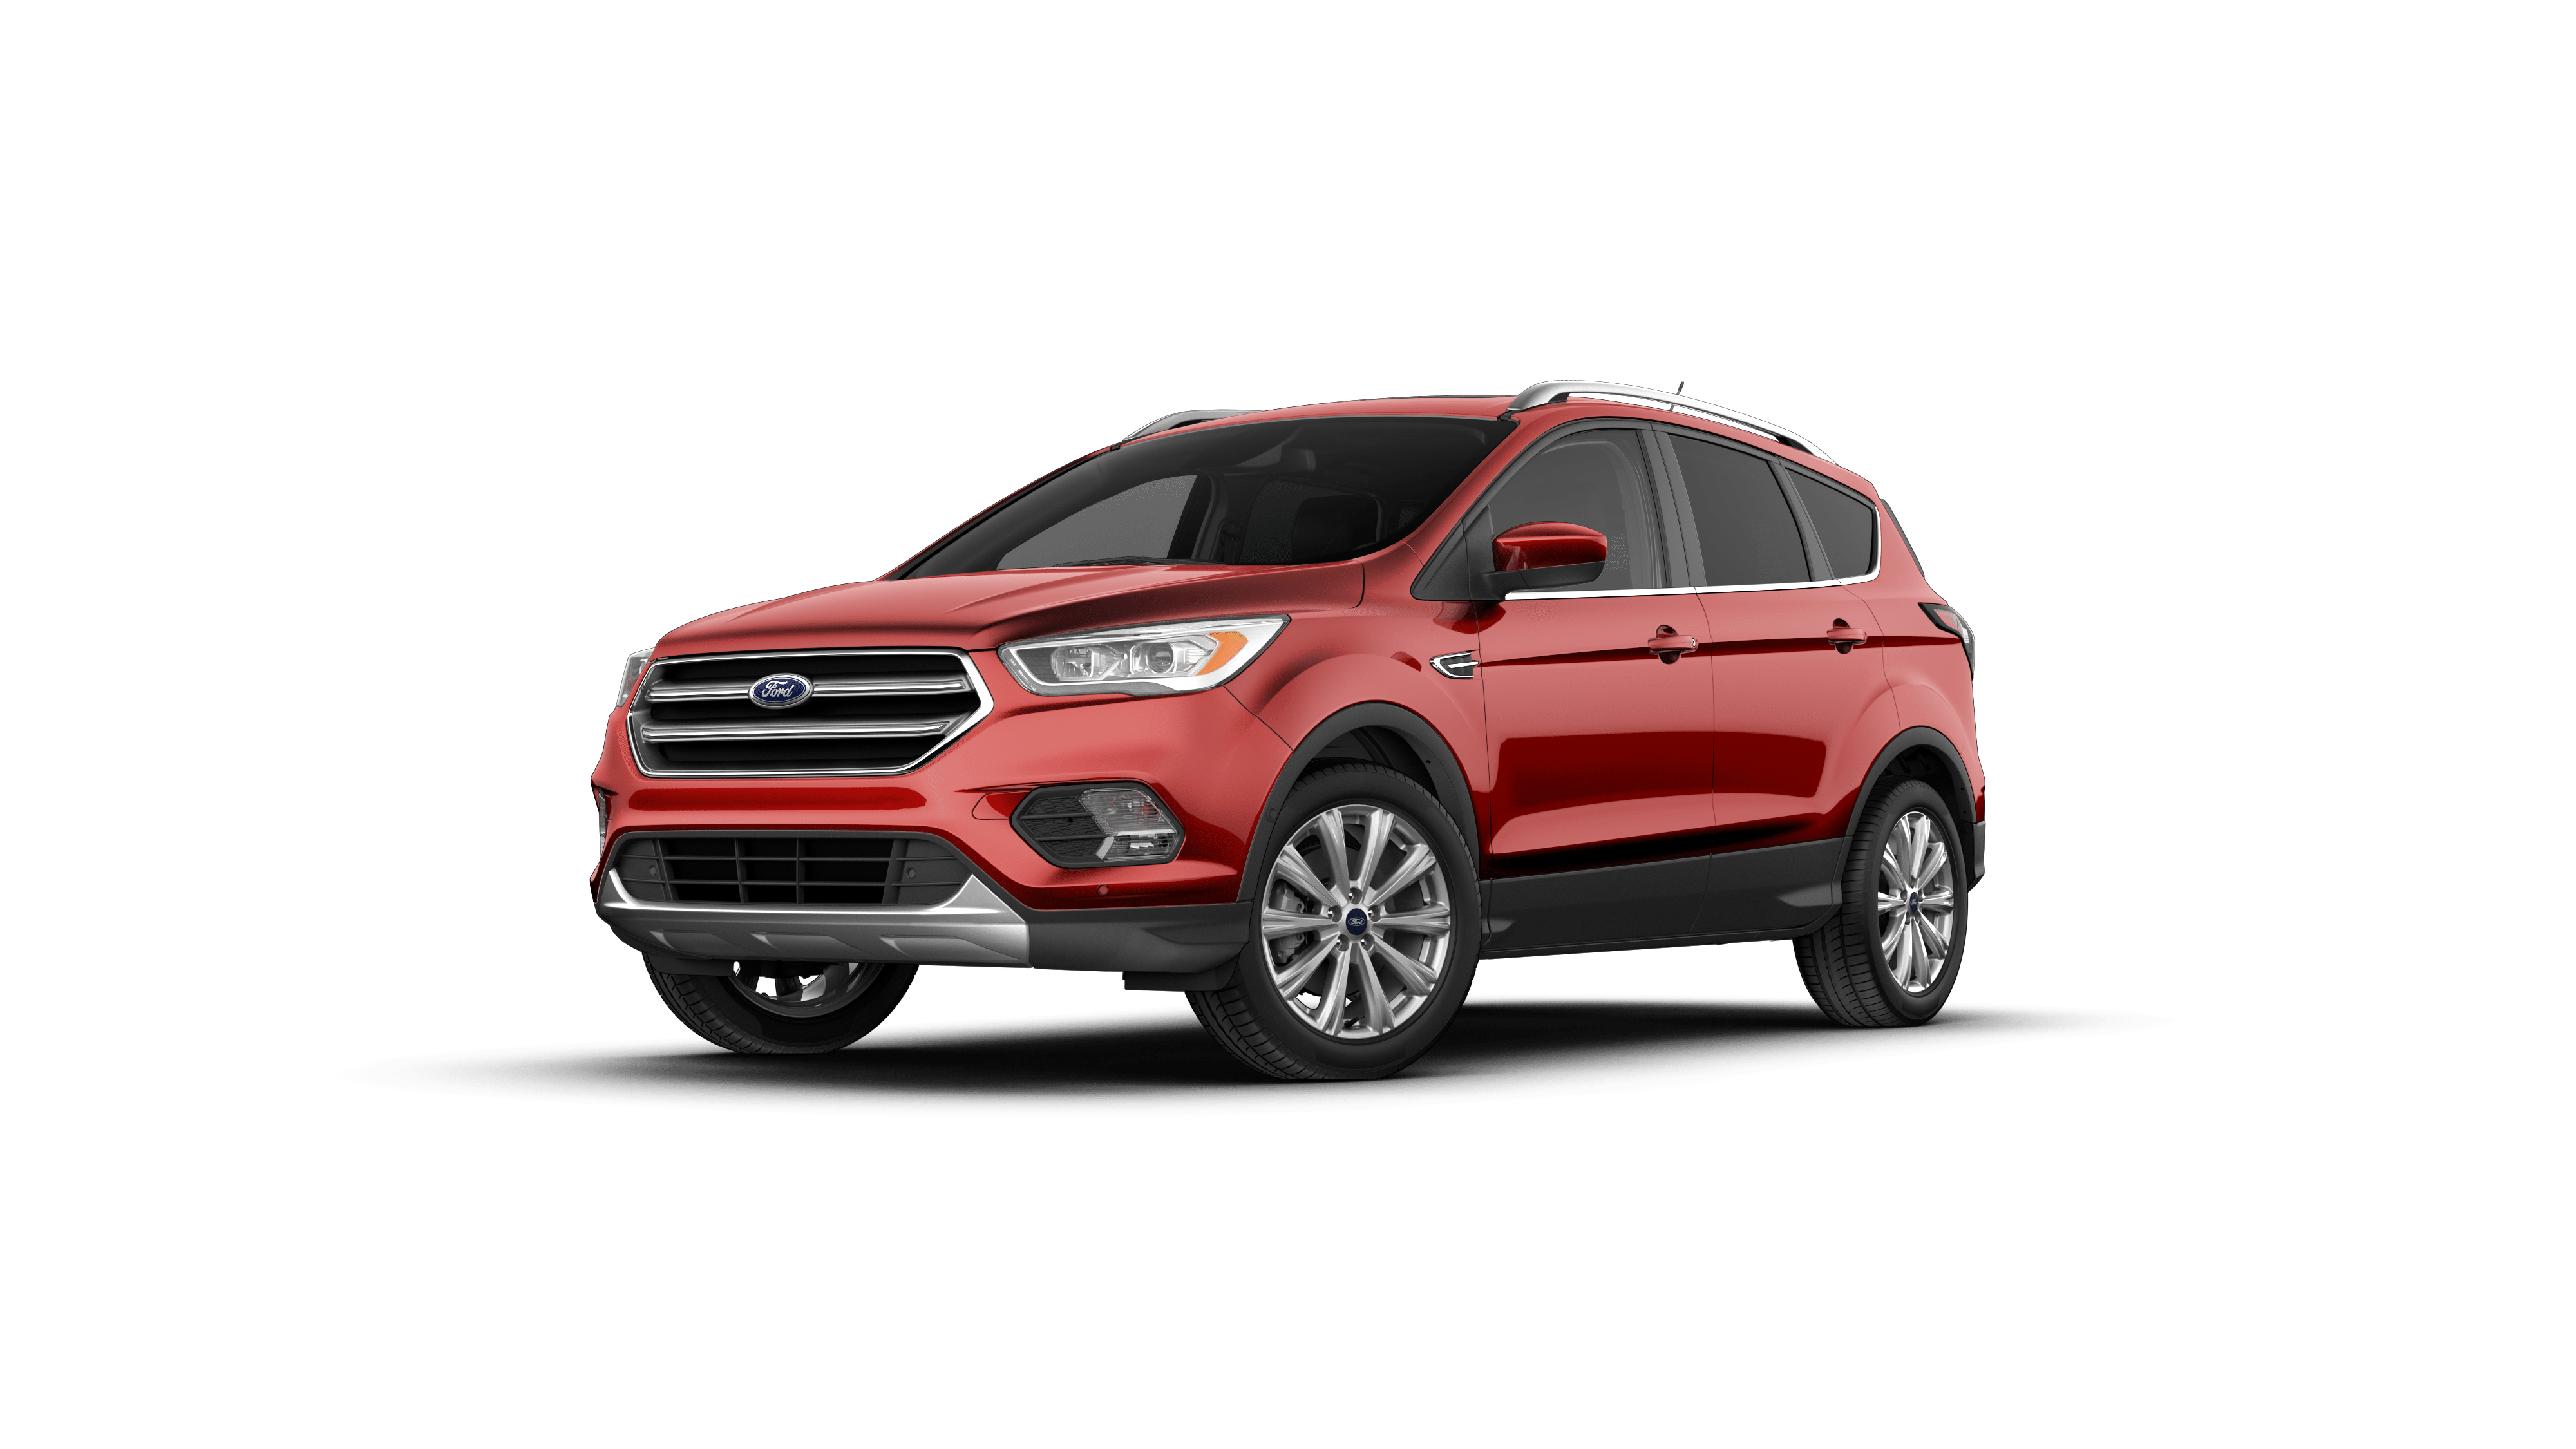 Chenango Sales Inc is a Ford dealer selling new and used cars in